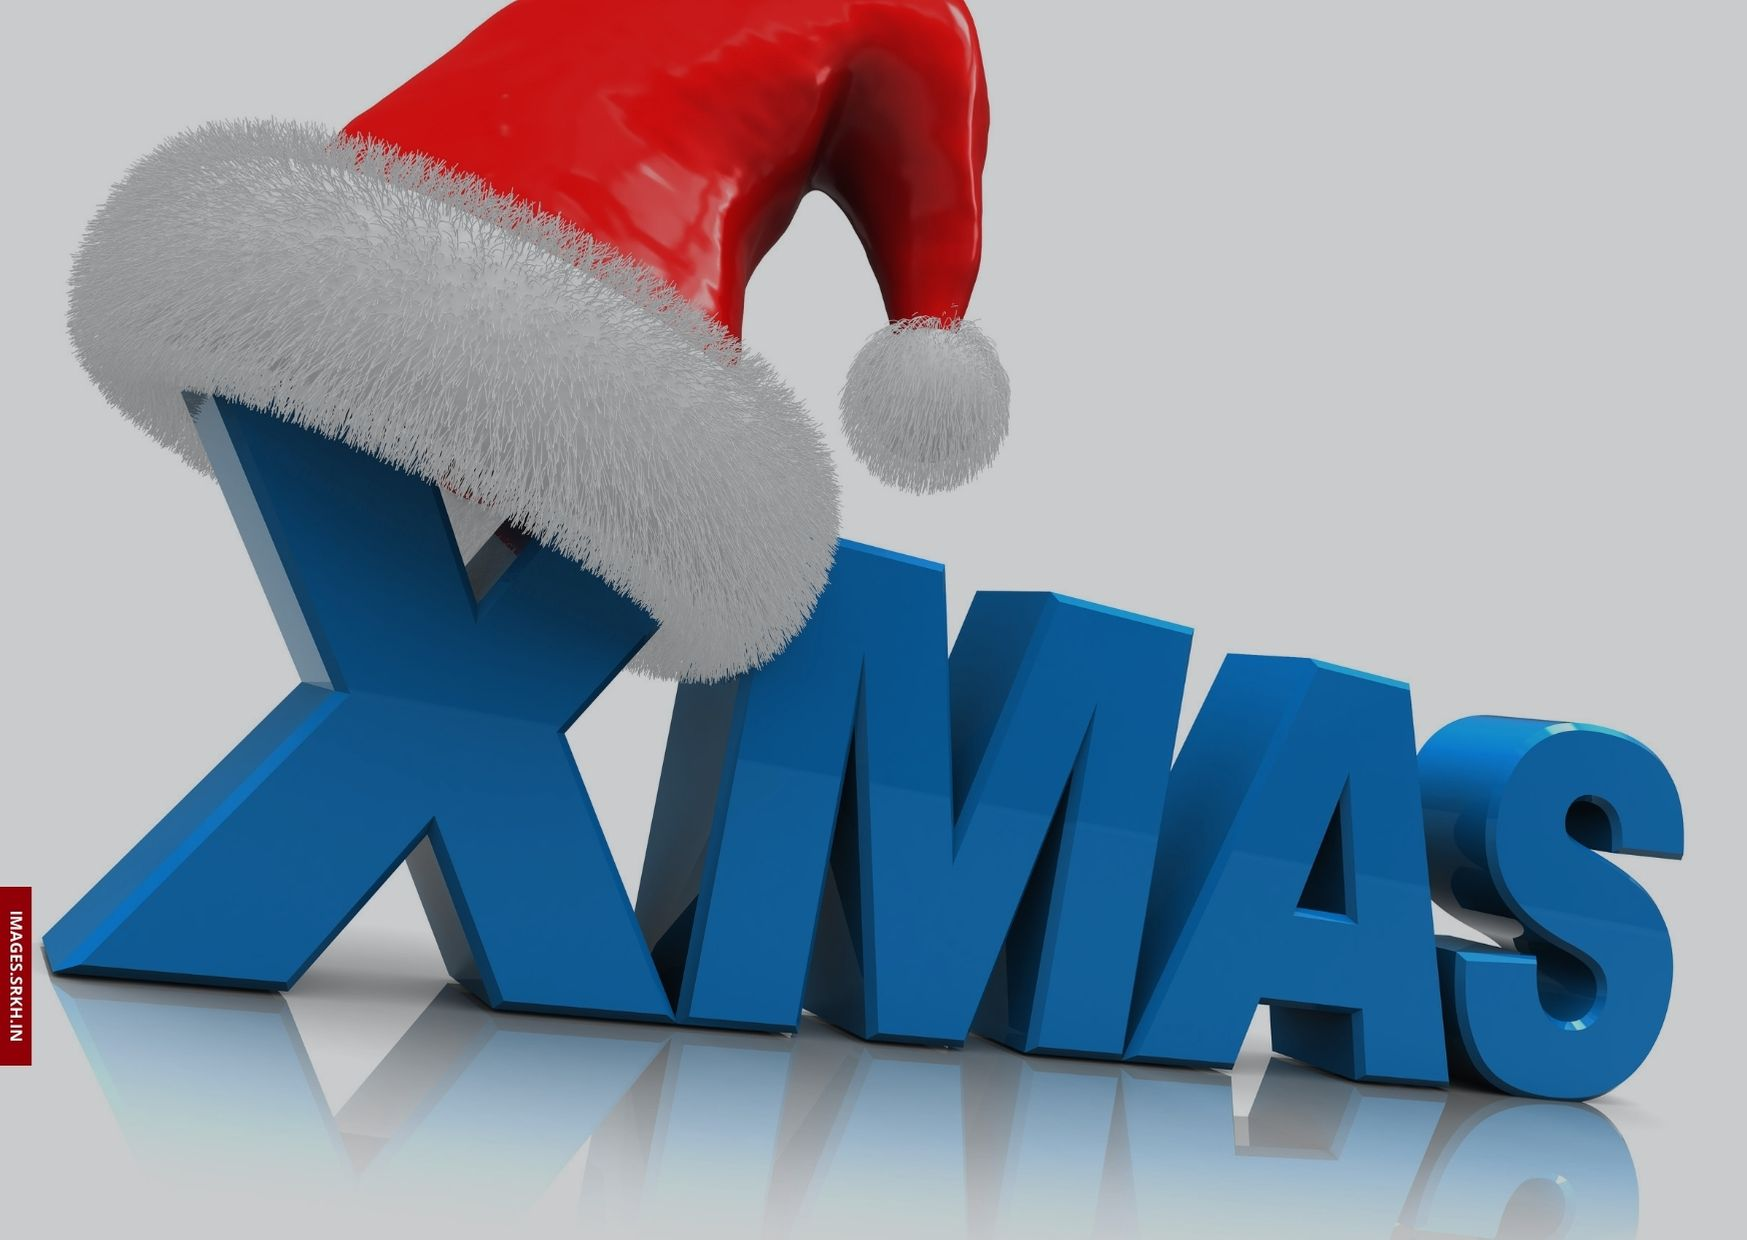 Xmas Images Download full HD free download.